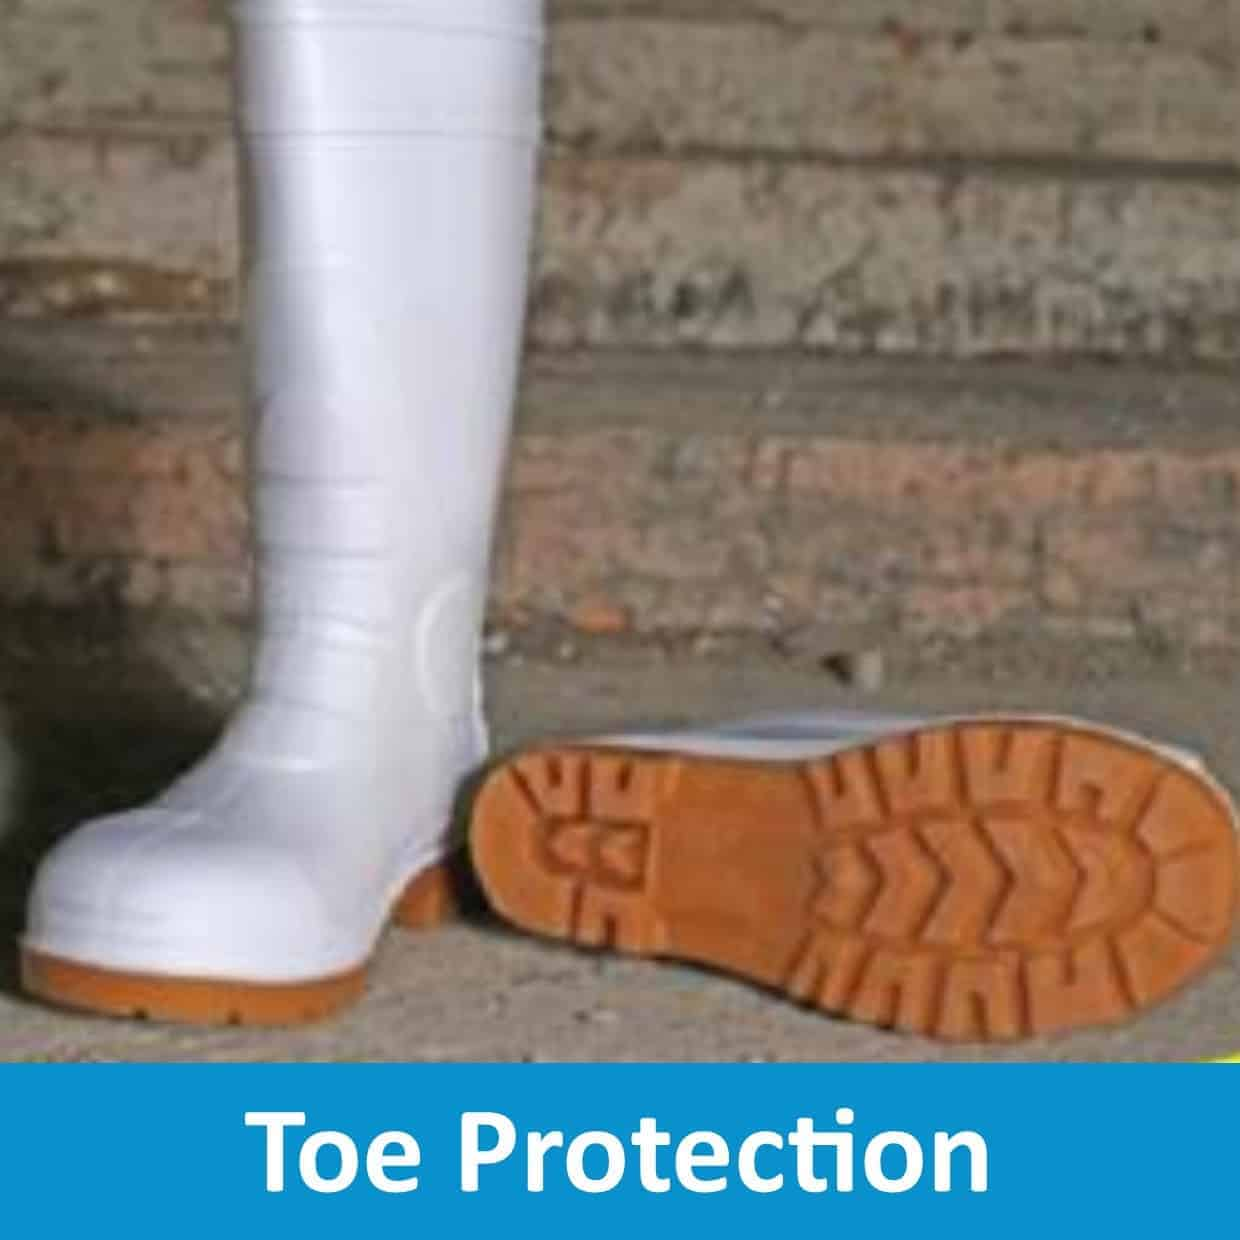 Footwear with Toe Protection